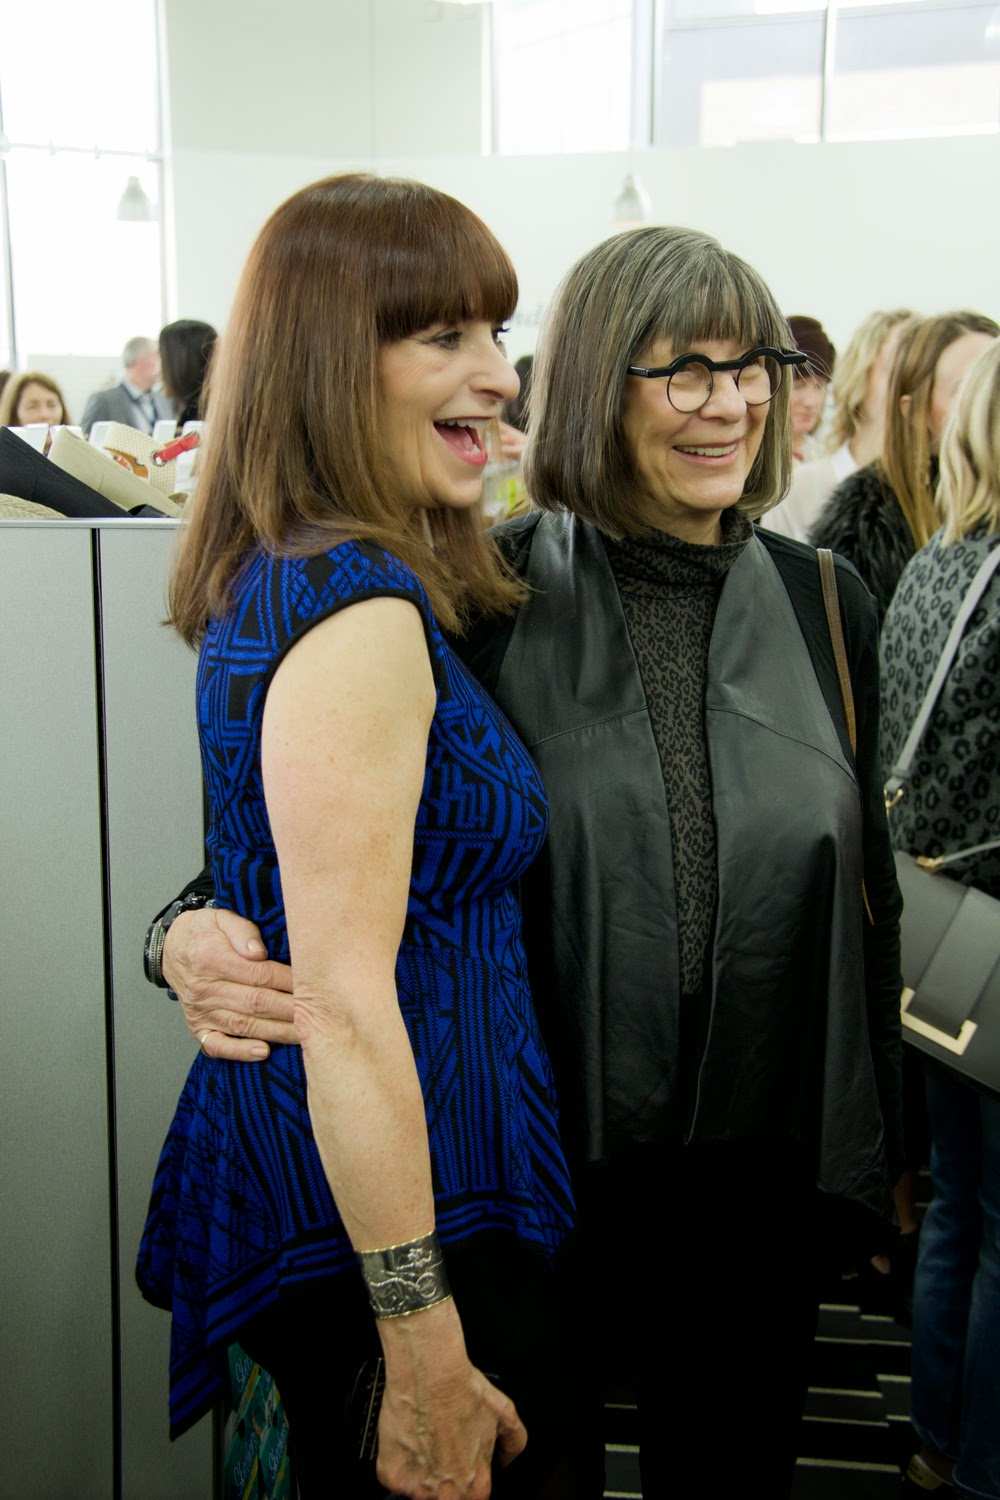 Media-Event, Jeanne-Beker, The-Shoe-Company